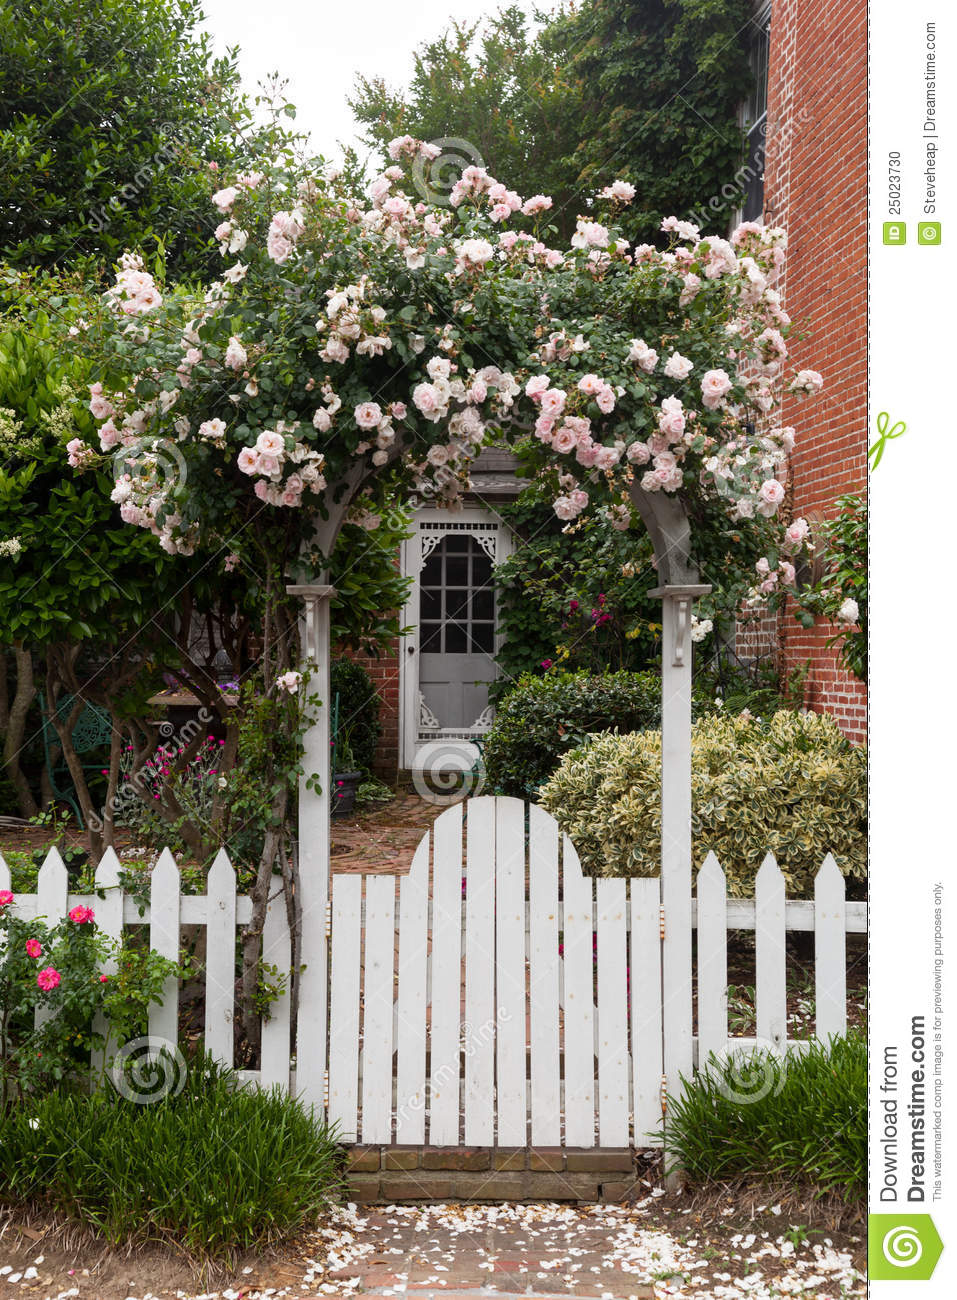 Wild Flowers Growing Over White Picket Fence Stock Photo